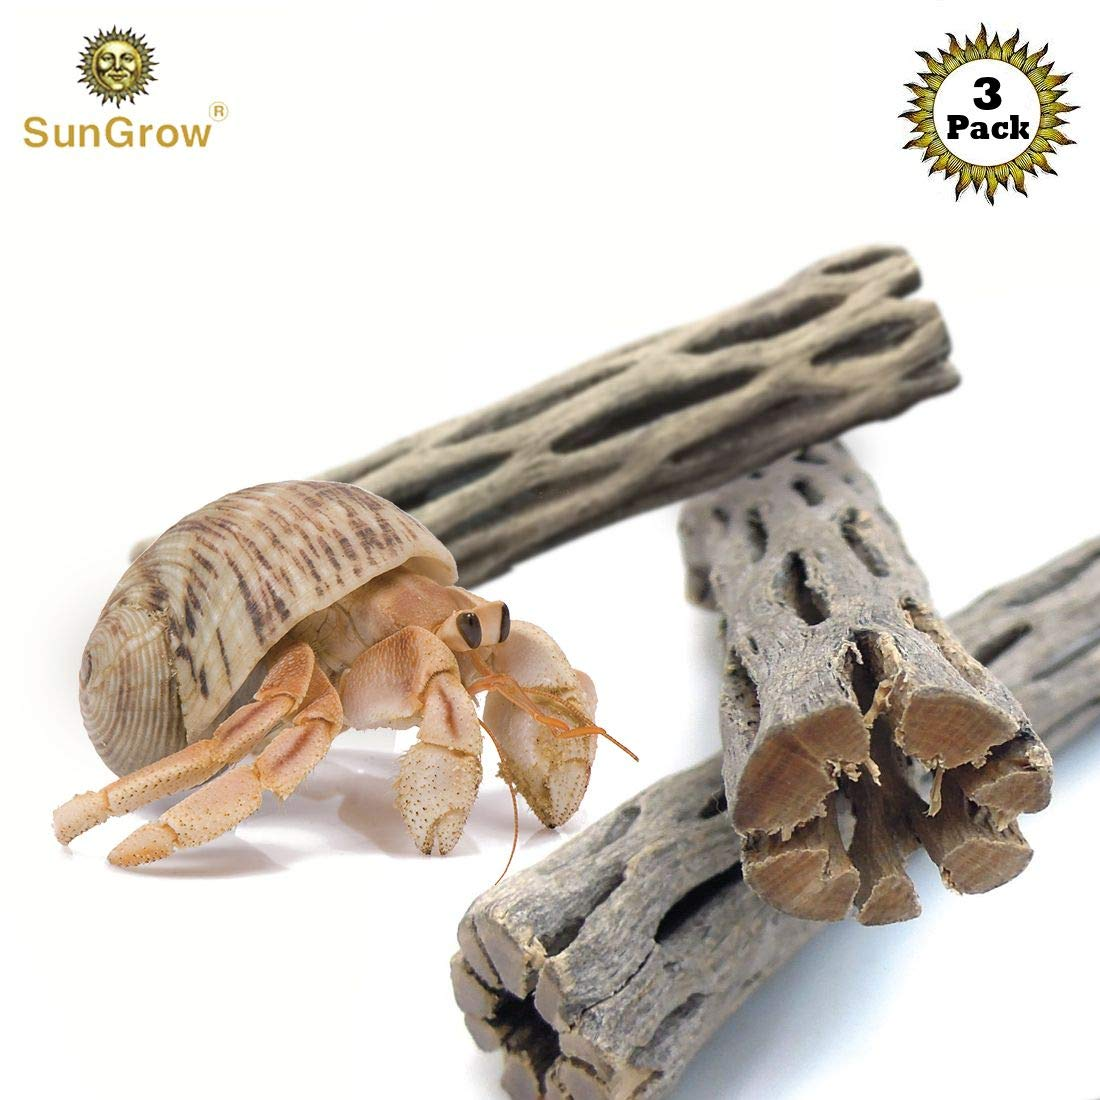 "All Natural 3 pcs Cholla Woods for Hermit Crabs - 6"" Long Dried Aquarium Décor - Pet-Safe Chew Toy and Source of Nutrition - Fun and Stimulating Activity for Little Climbers"